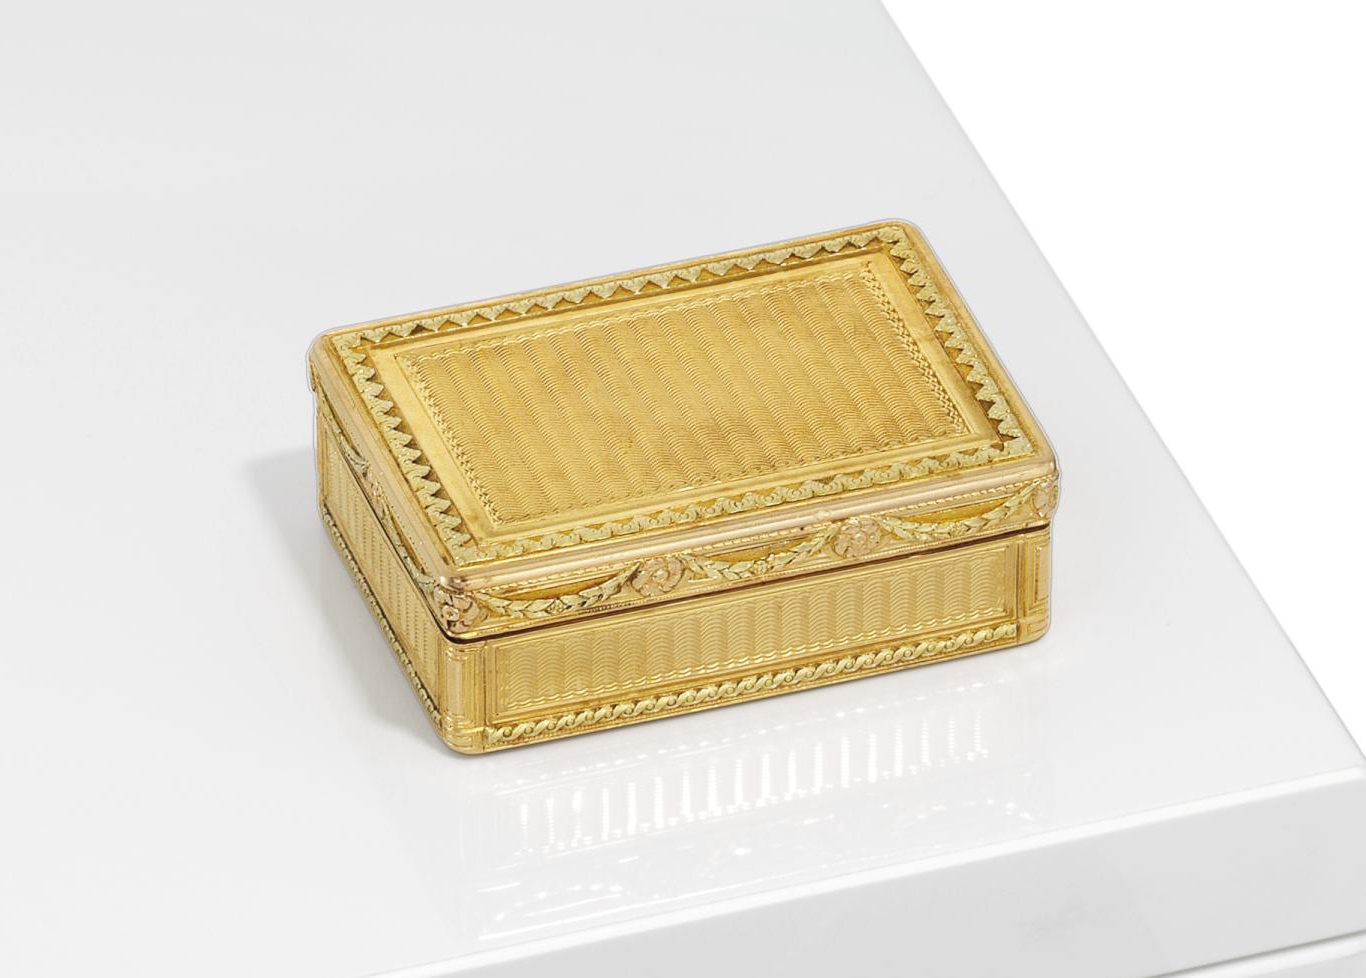 A LOUIS XVI VARI-COLOUR GOLD BOITE-A-FARD